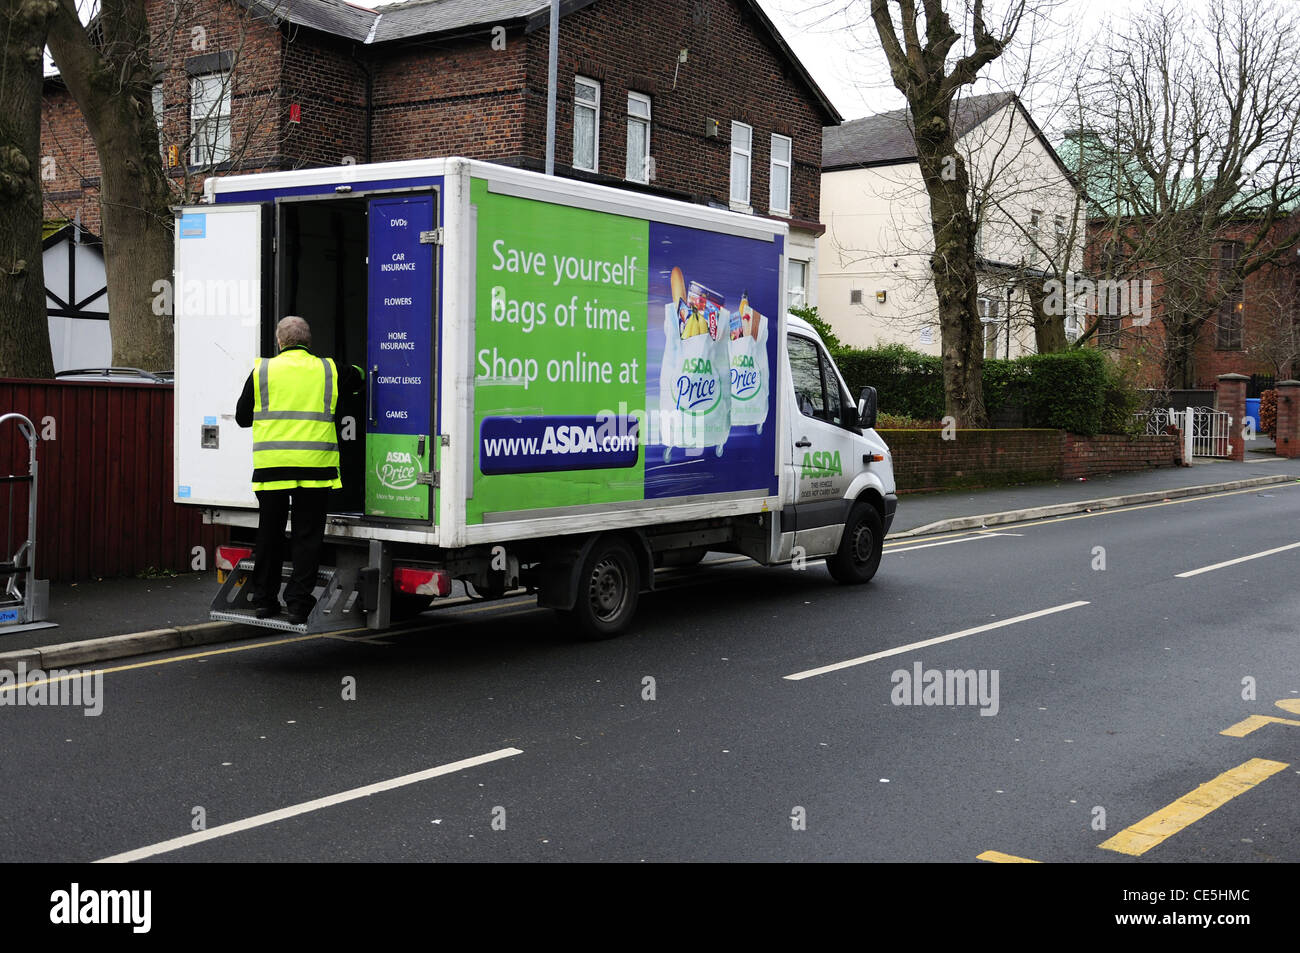 Grocery Delivery Asda Are you interested in grocery delivery Asda? Below we share the latest updates. Shopping through the internet, or groceries delivery is lately hugely popular. Some supermarkets have just started the delivery service, and more and more people can benefit. What is the status of the delivery service of Asda? See the current status.